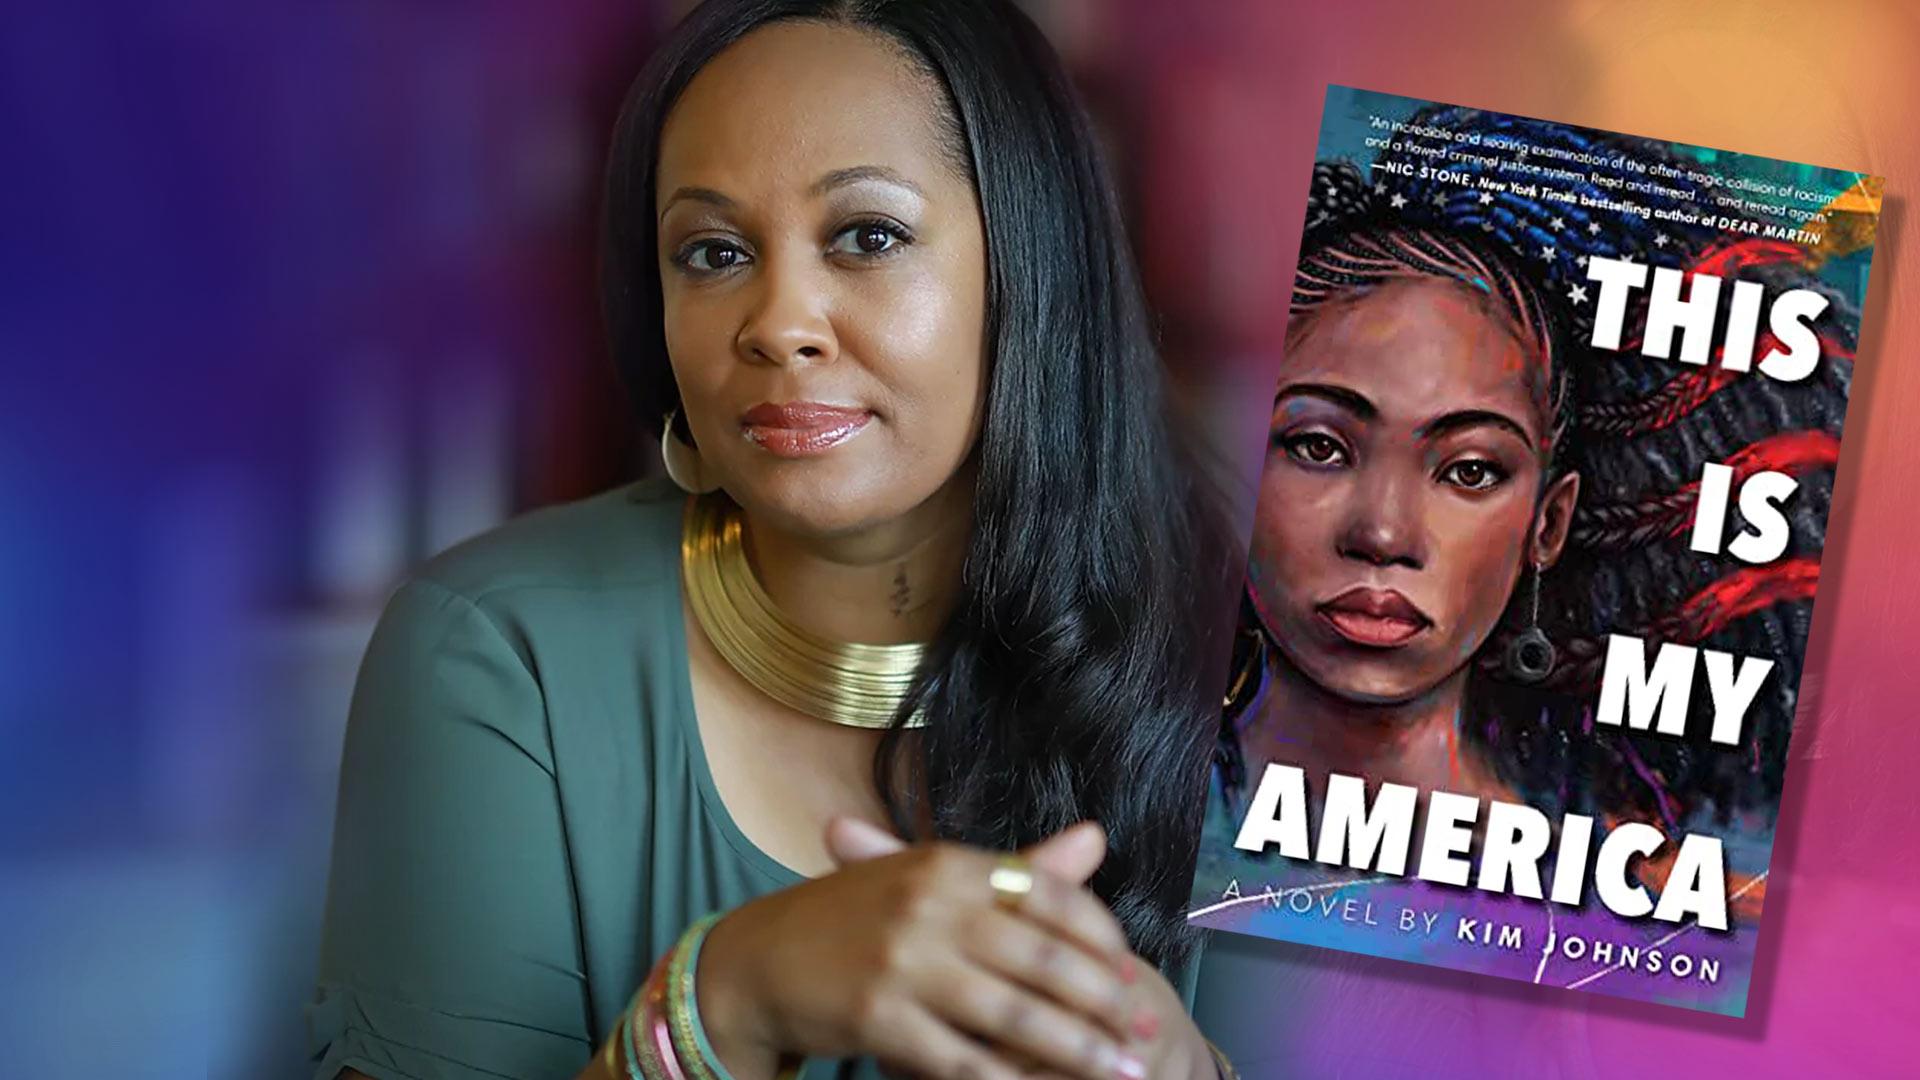 Alum's Debut Novel Uses Mystery to Examine Racial Equity in Legal System